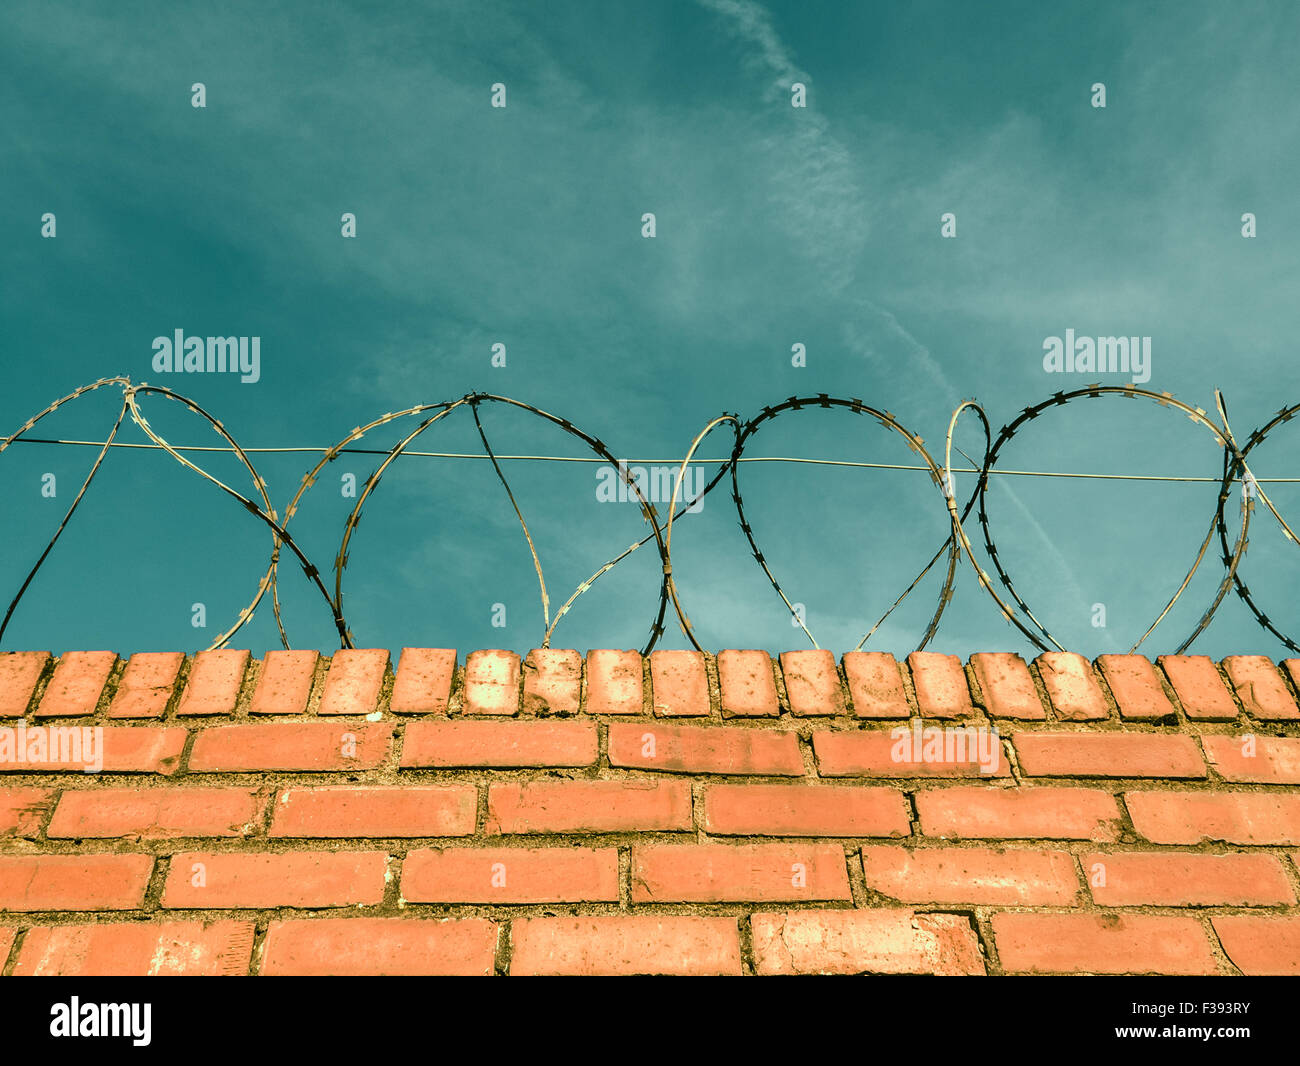 Barbed Or Razor Wire On Top Of A Red Brick Wall Around Private Property - Stock Image